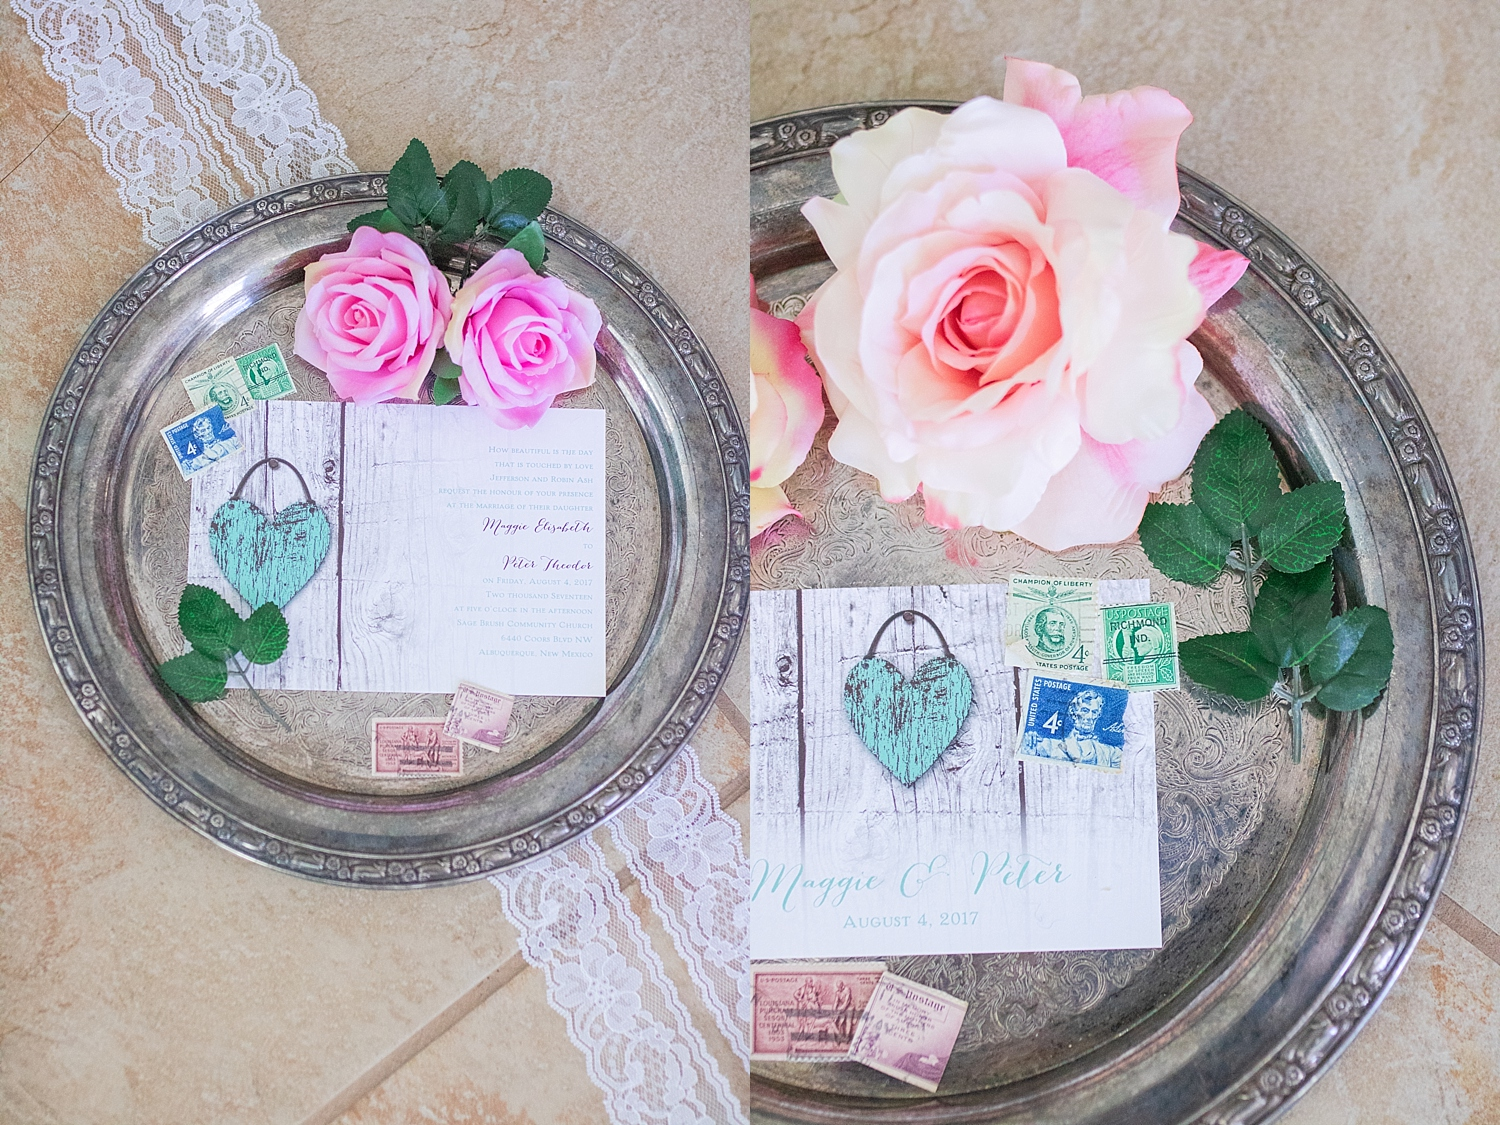 Rustic teal invitations with vintage stamps, silver tray, lace, pink and yellow roses and leaves.